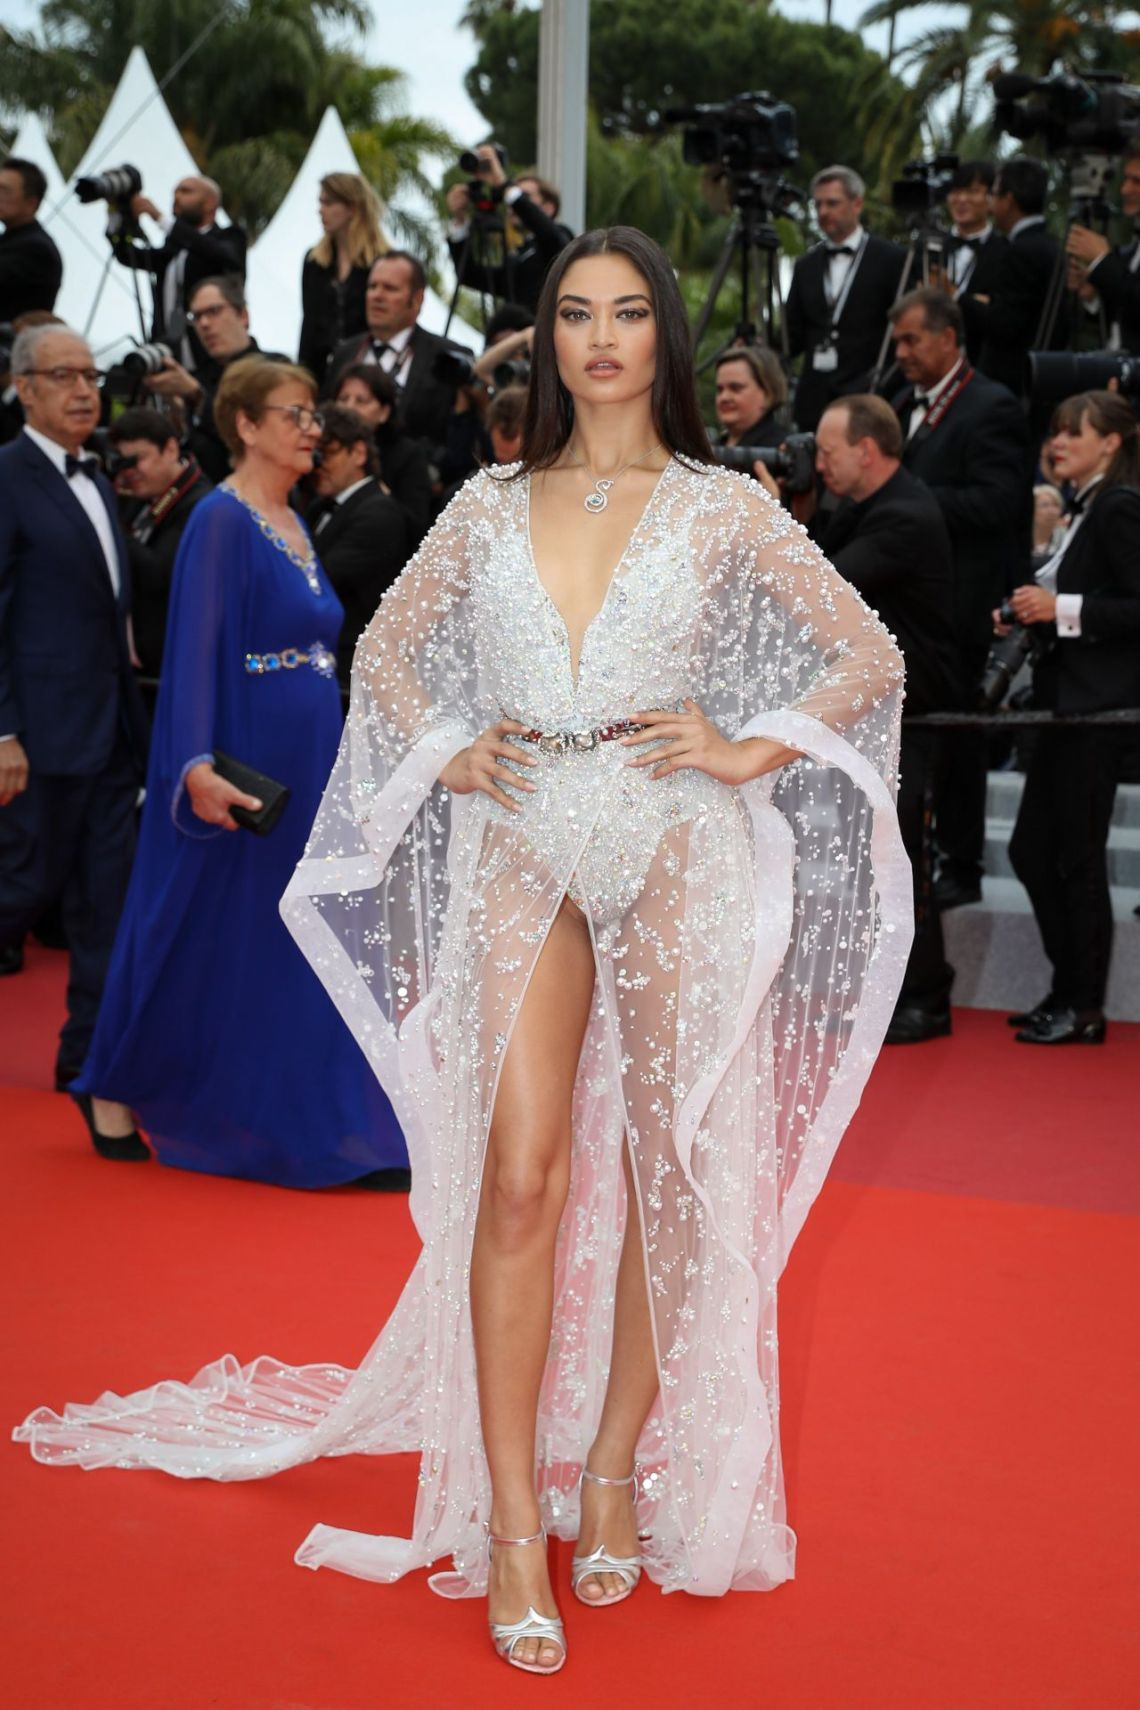 shanina-shaik-sibyl-red-carpet-at-cannes-film-festival-4zuhair murad hc